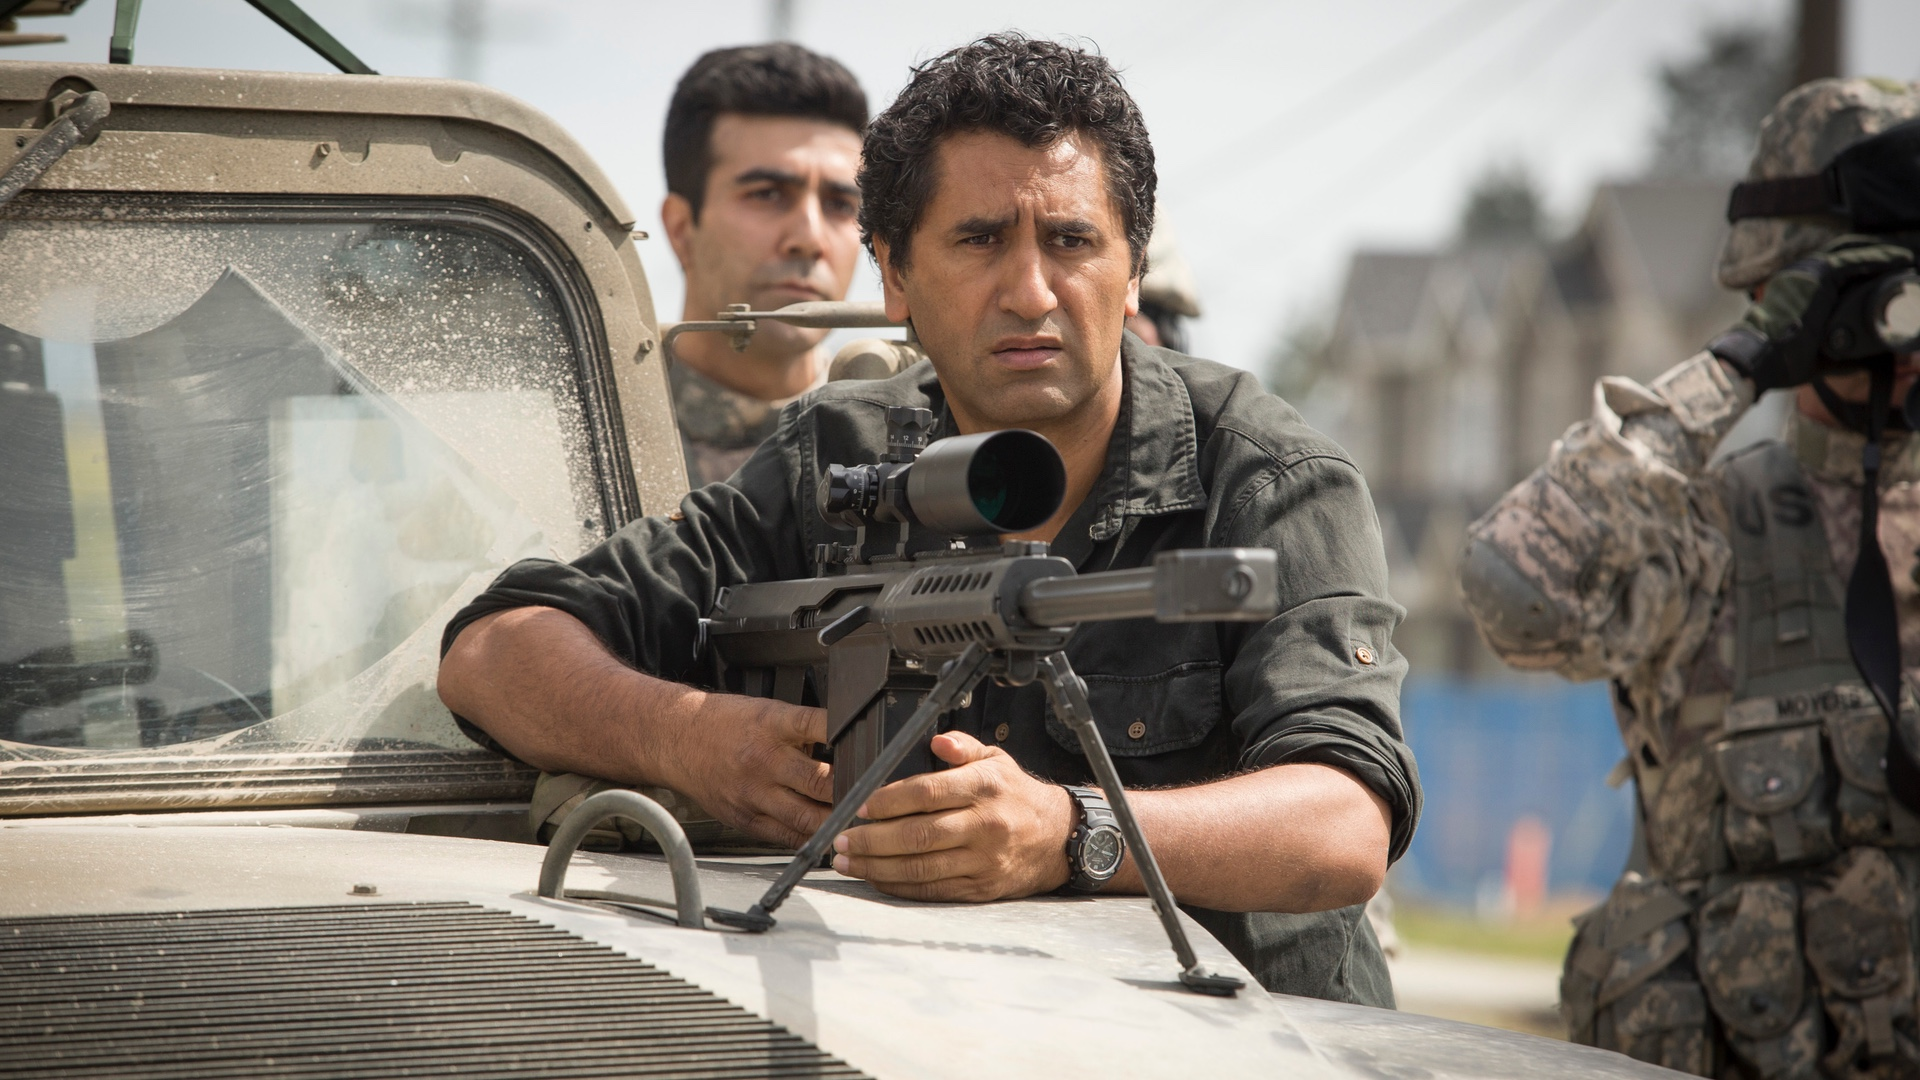 FEAR THE WALKING DEAD Star Cliff Curtis Joins Cast of ...